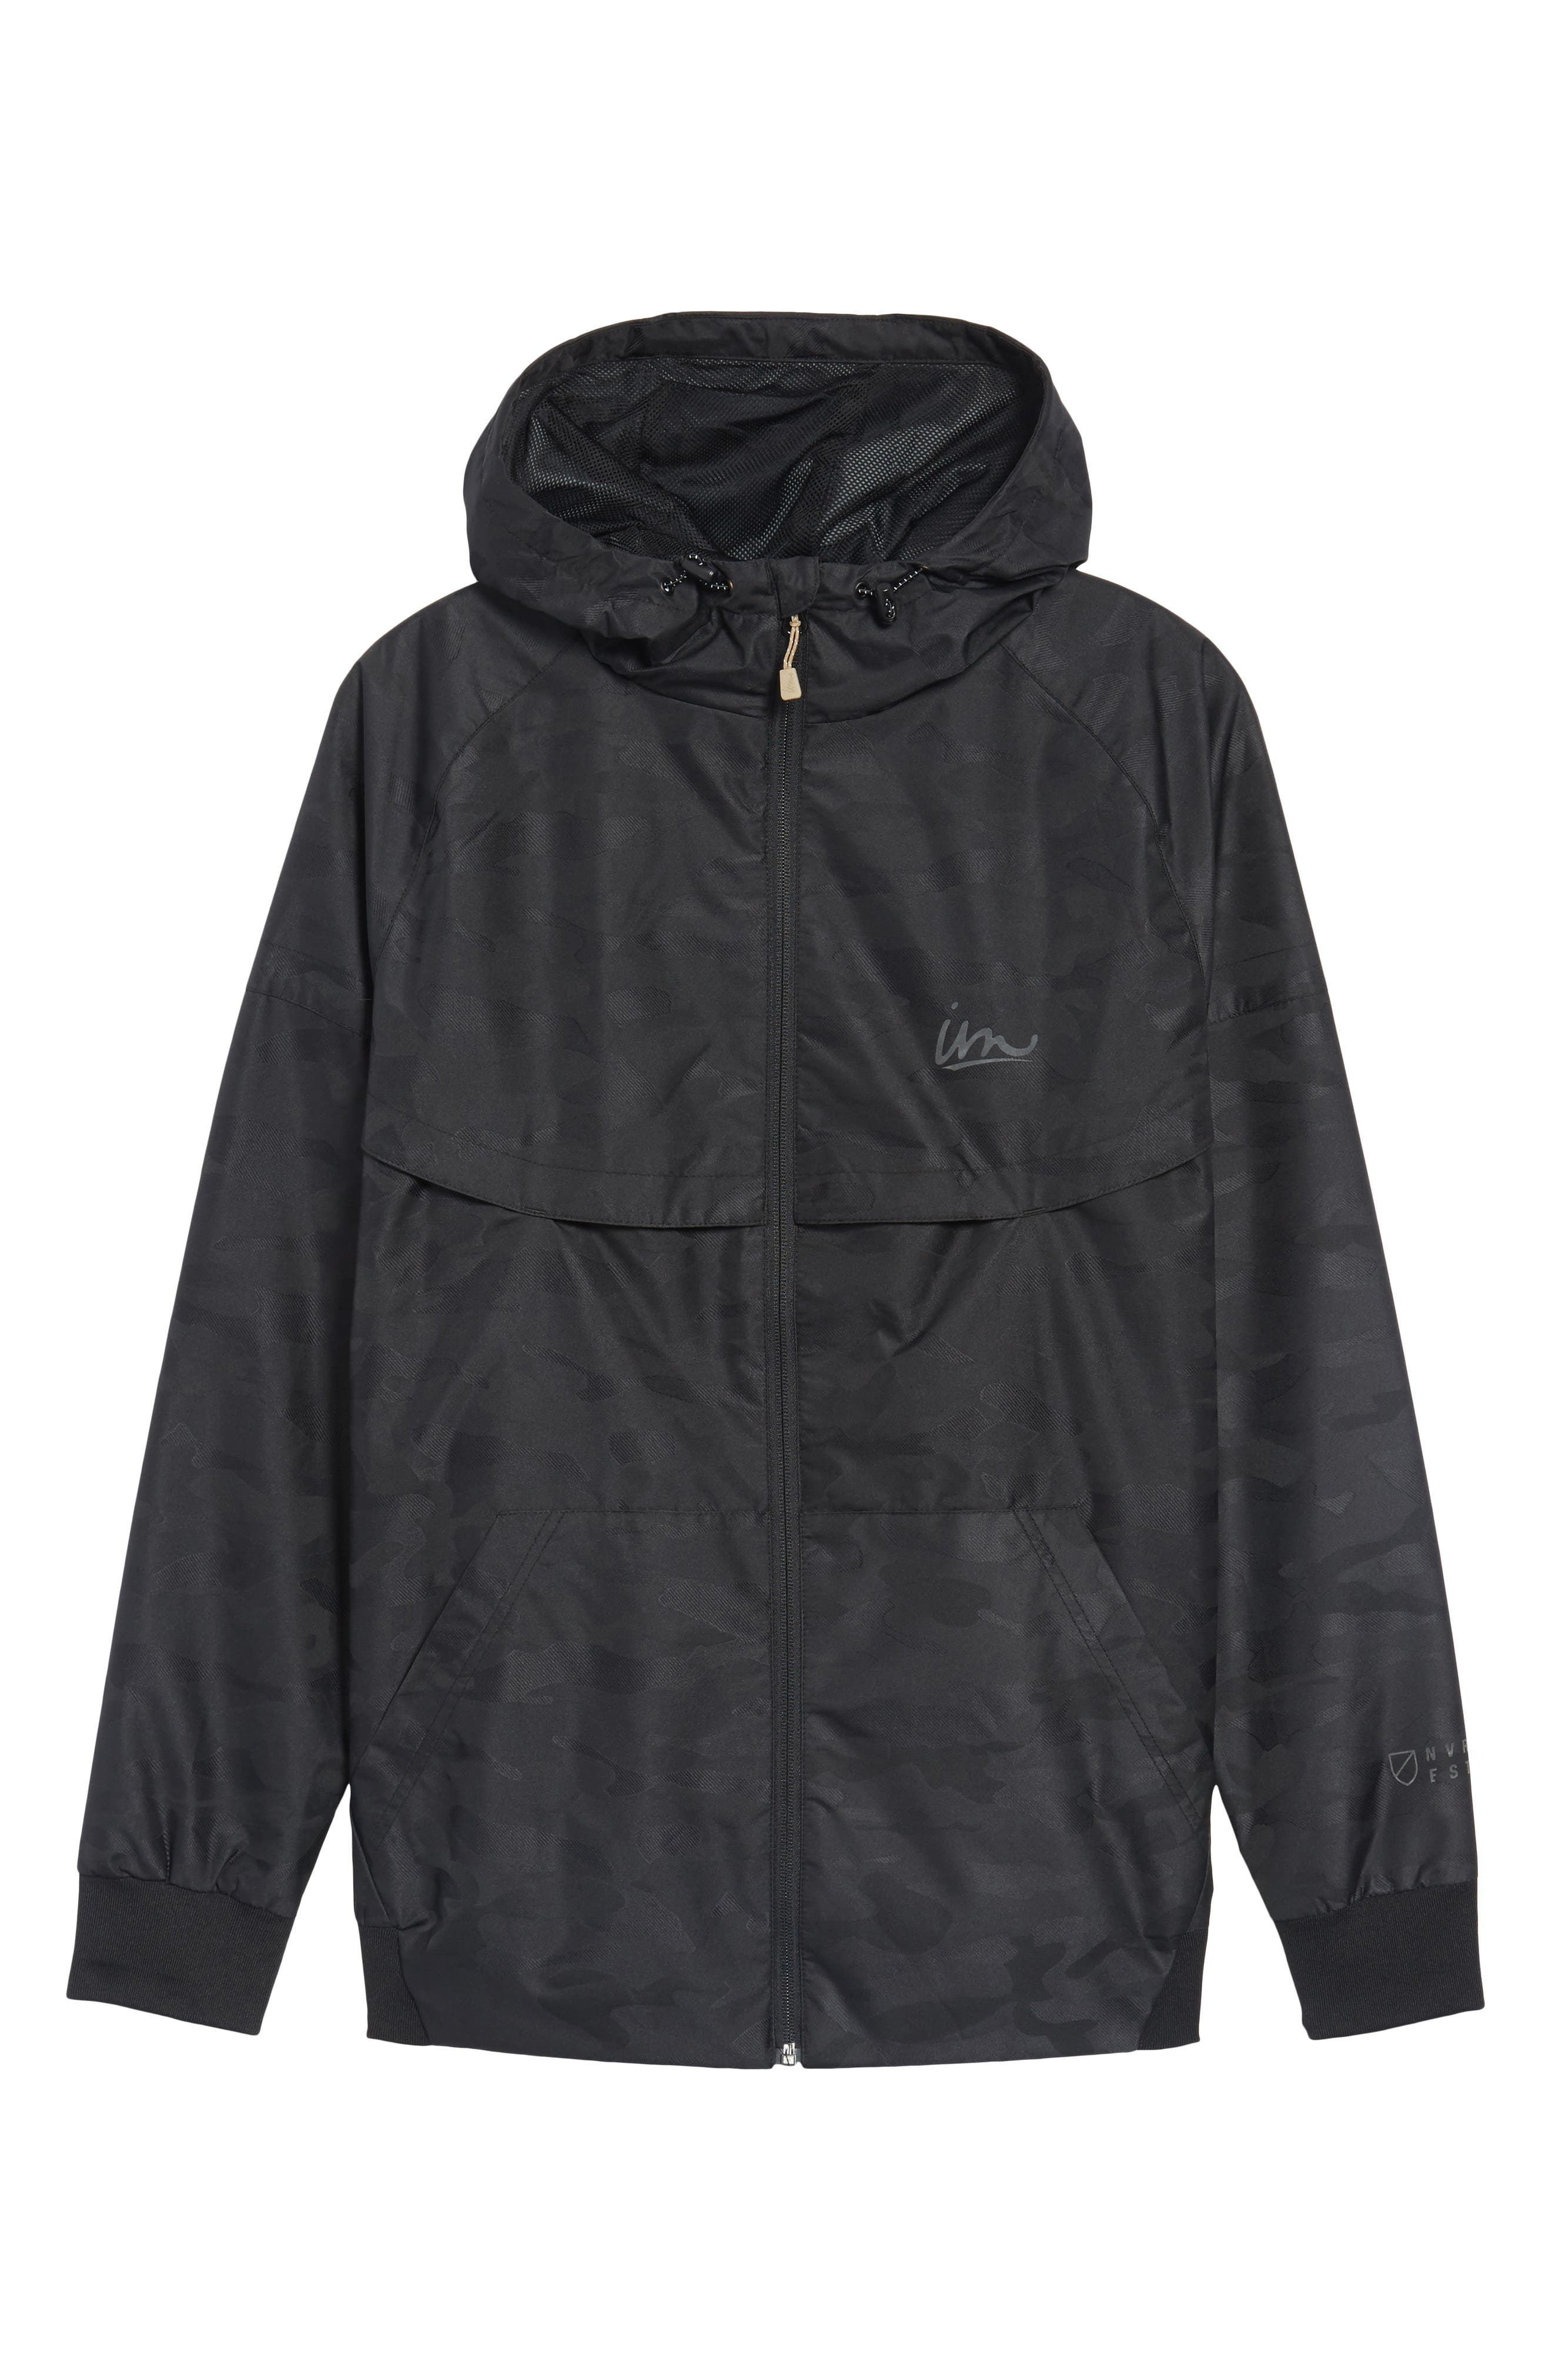 Larter Breaker Jacket,                             Alternate thumbnail 6, color,                             Black Camo